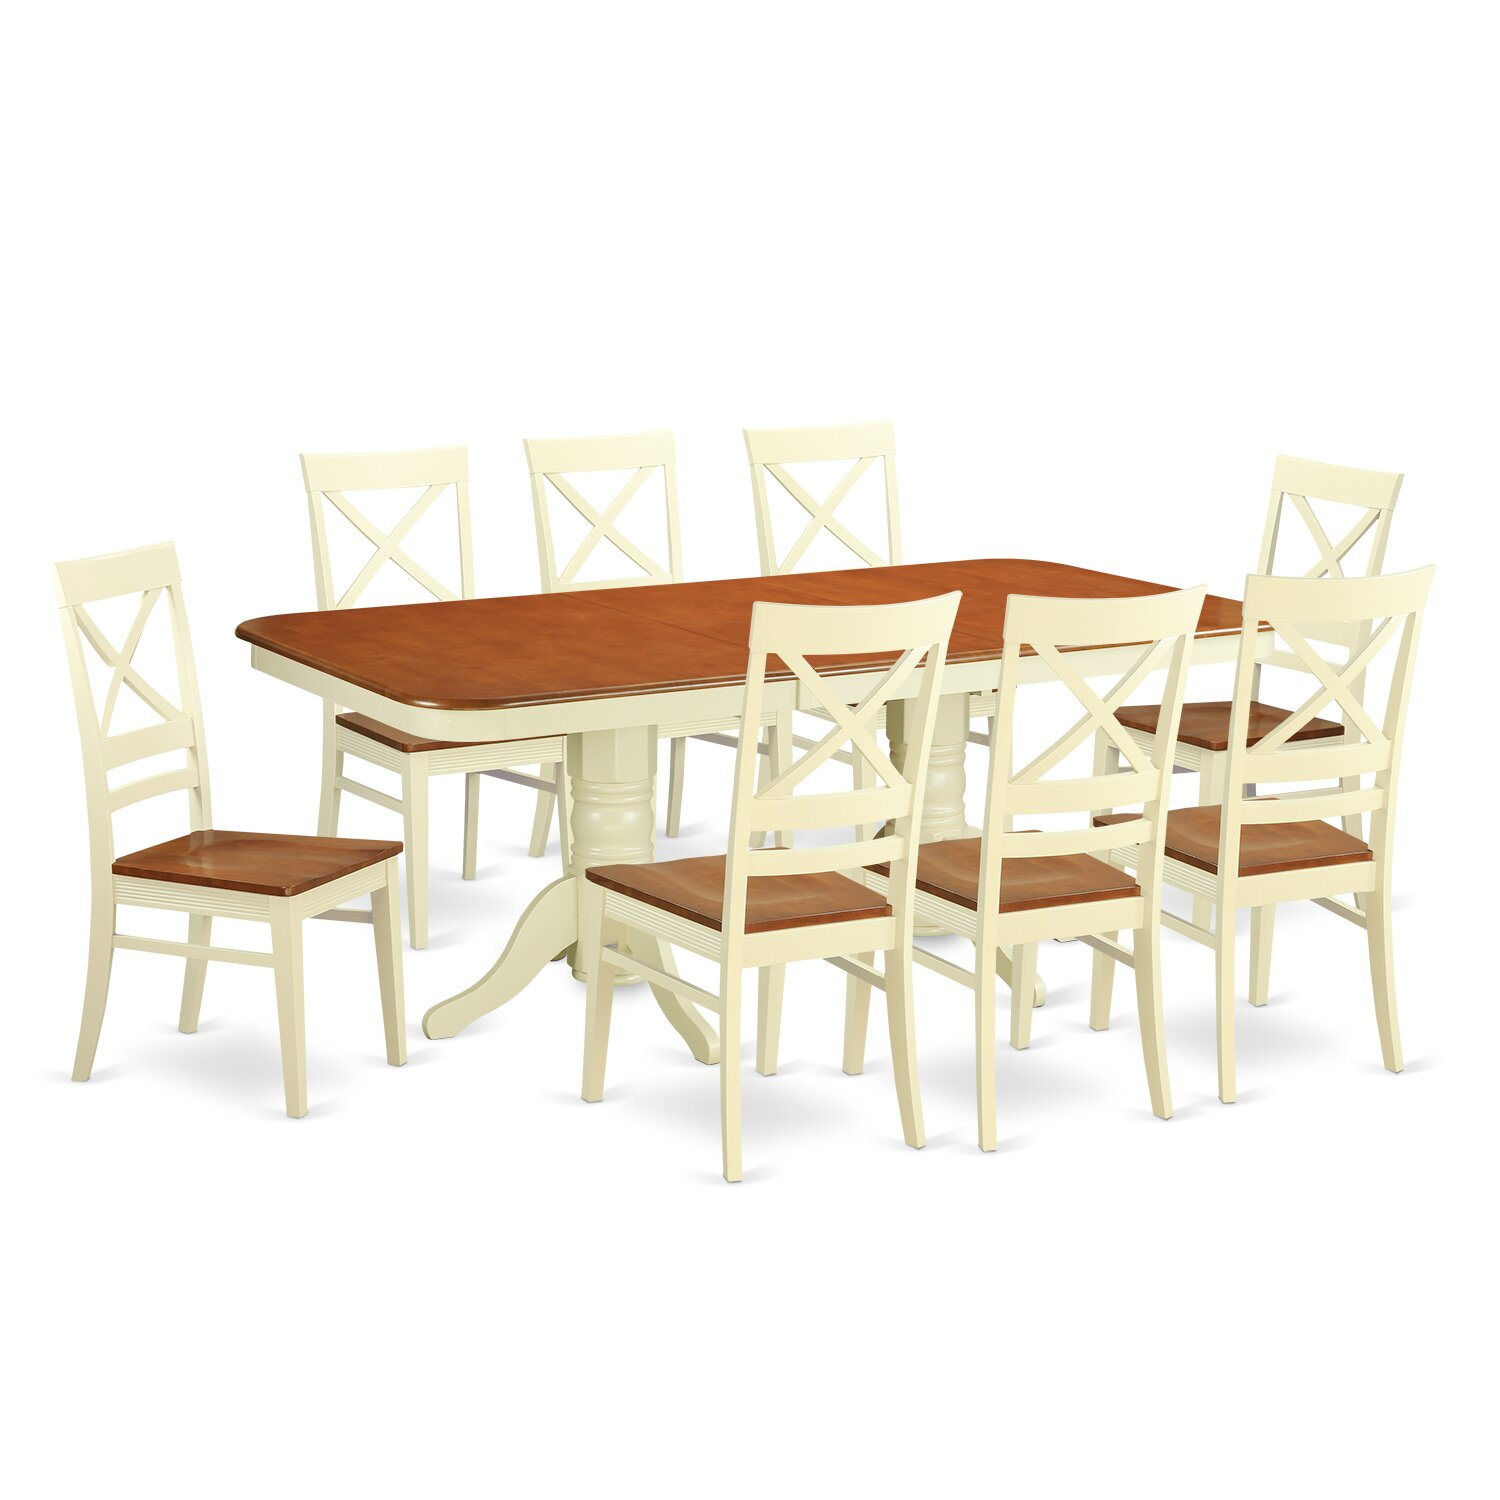 Wooden importers napoleon 9 piece dining set wayfair for 9 pc dining room table sets